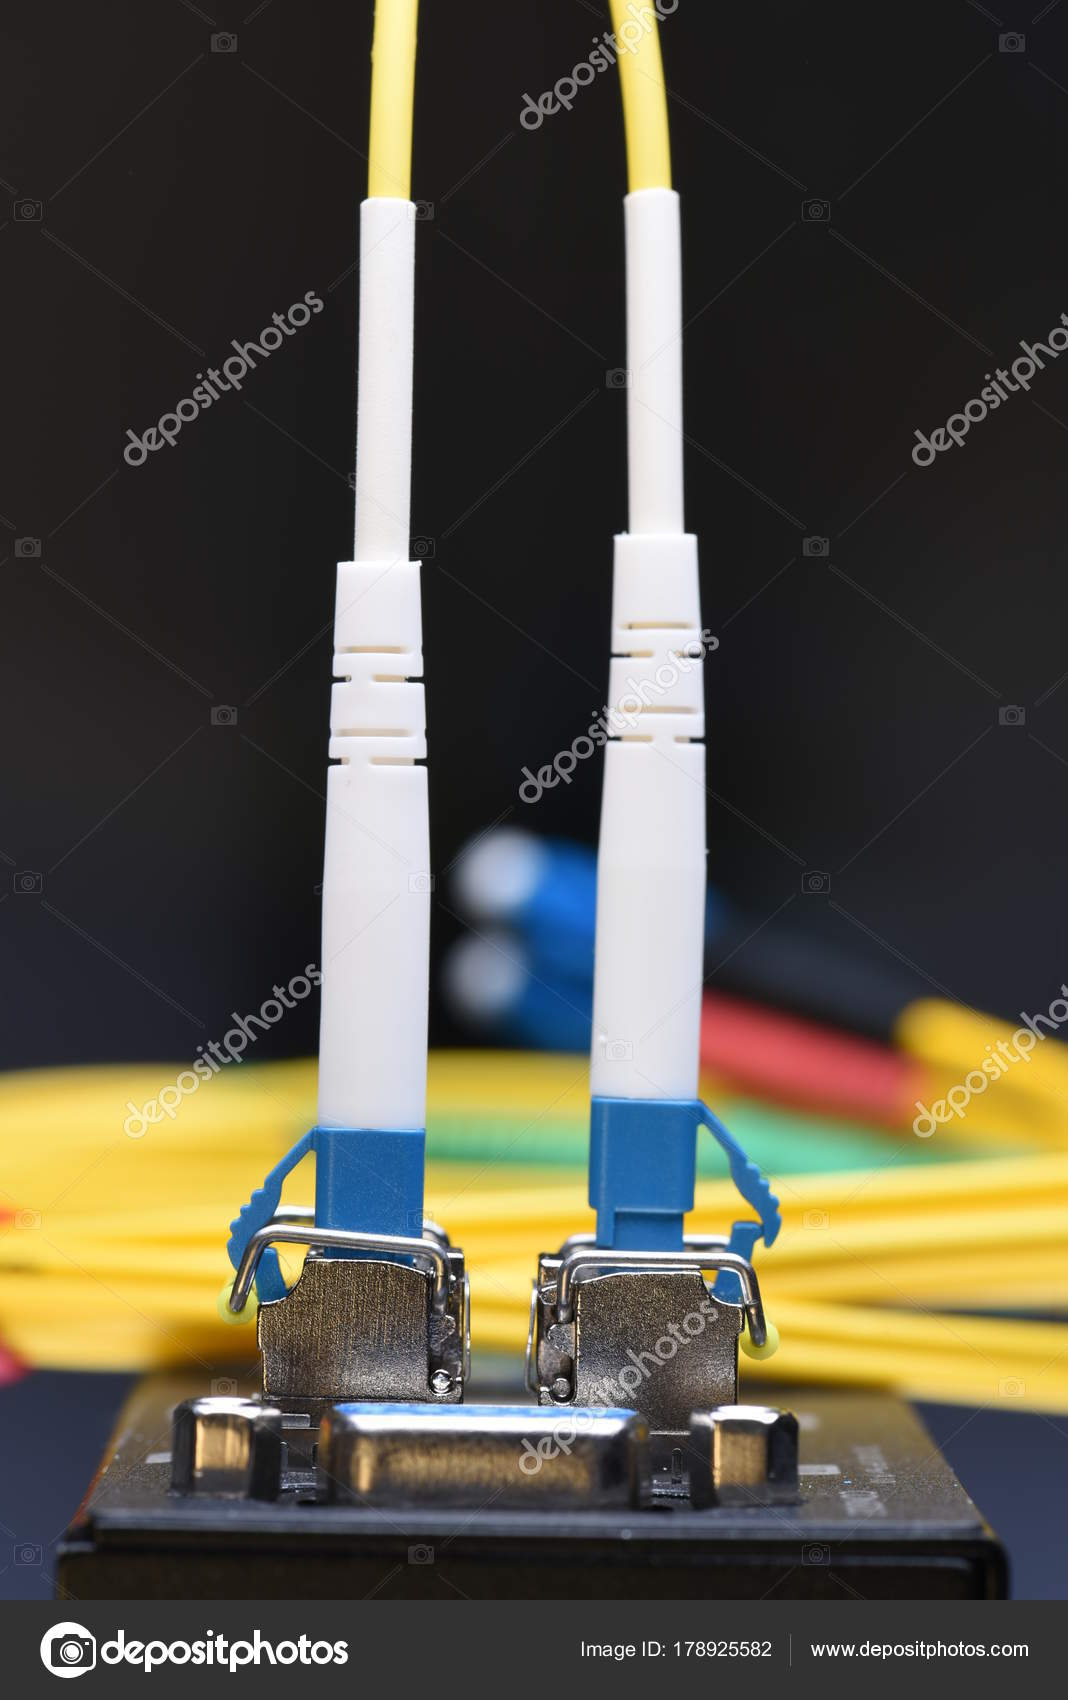 Internet Network Technology Fiber Optic Cable Connected Switch Data